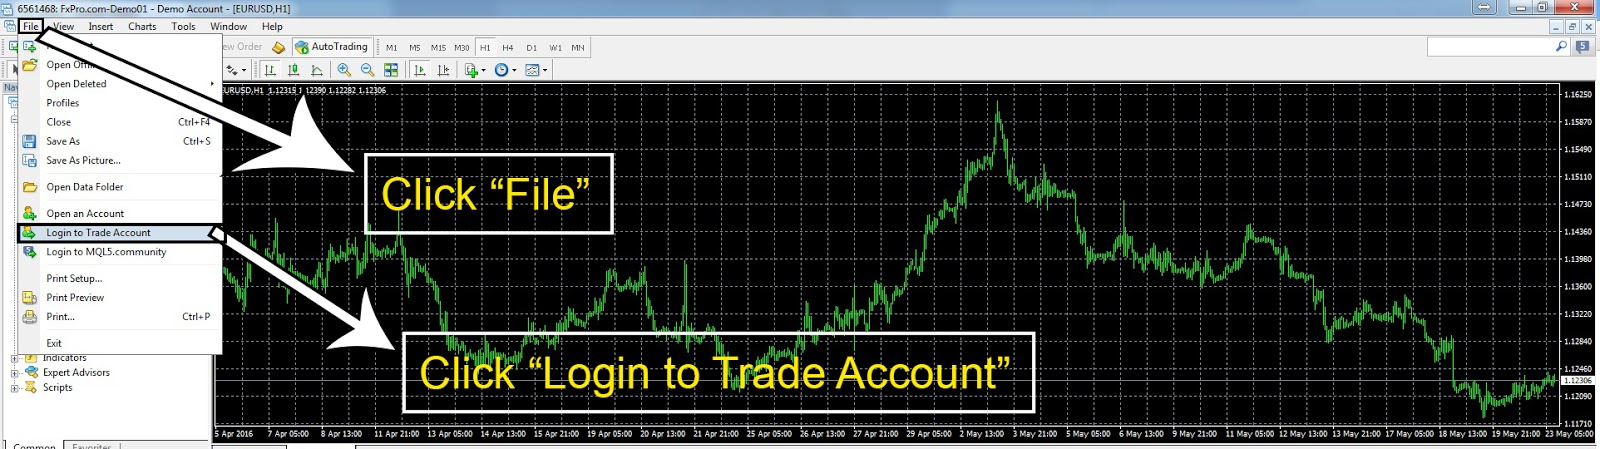 Sony Perfect Forex Trading System How To Login Mt4